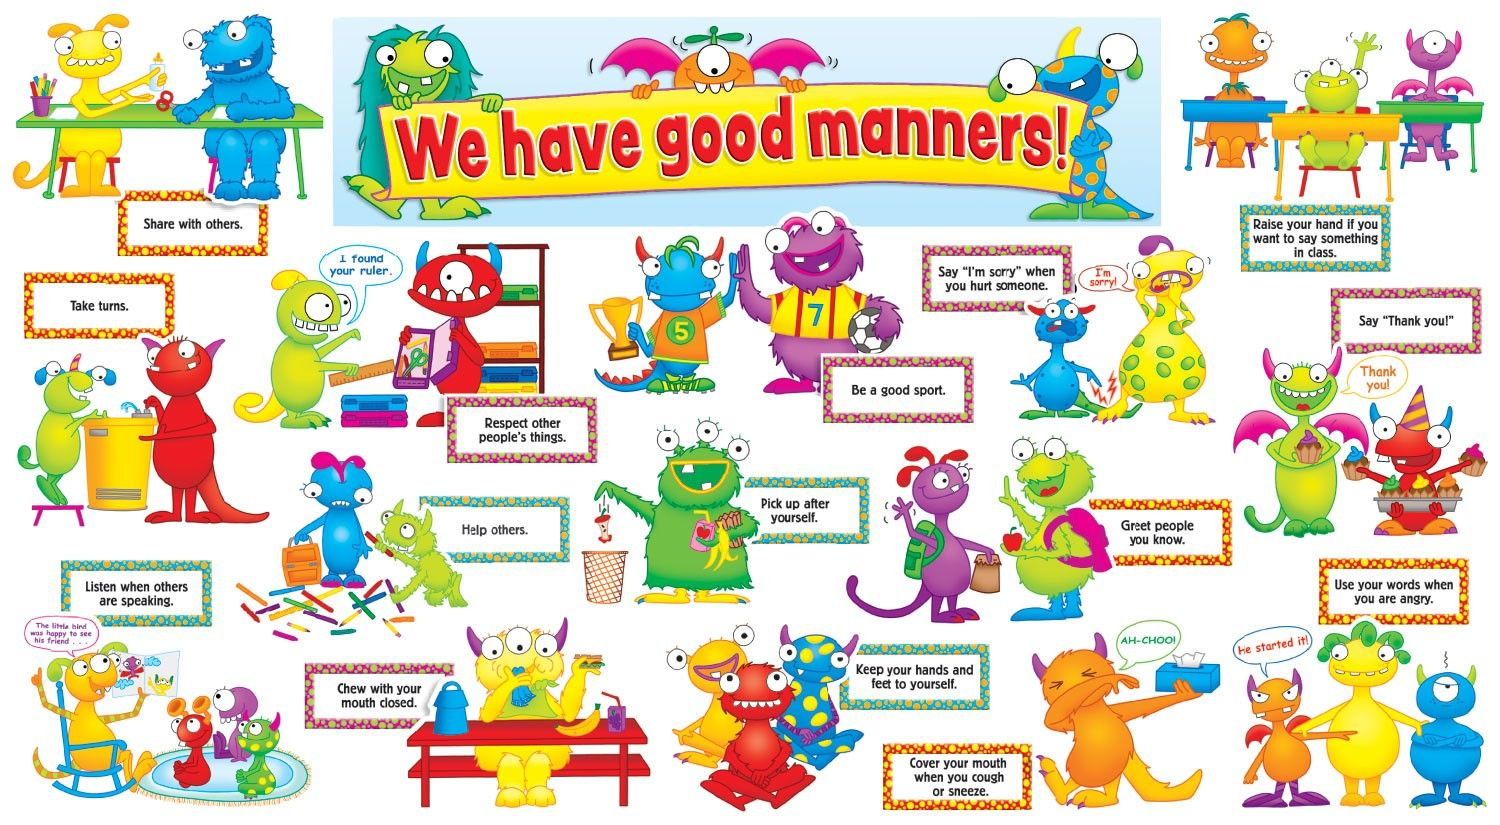 Good Manners For Kids Preschool Perfect For First Day Of Co Op Class